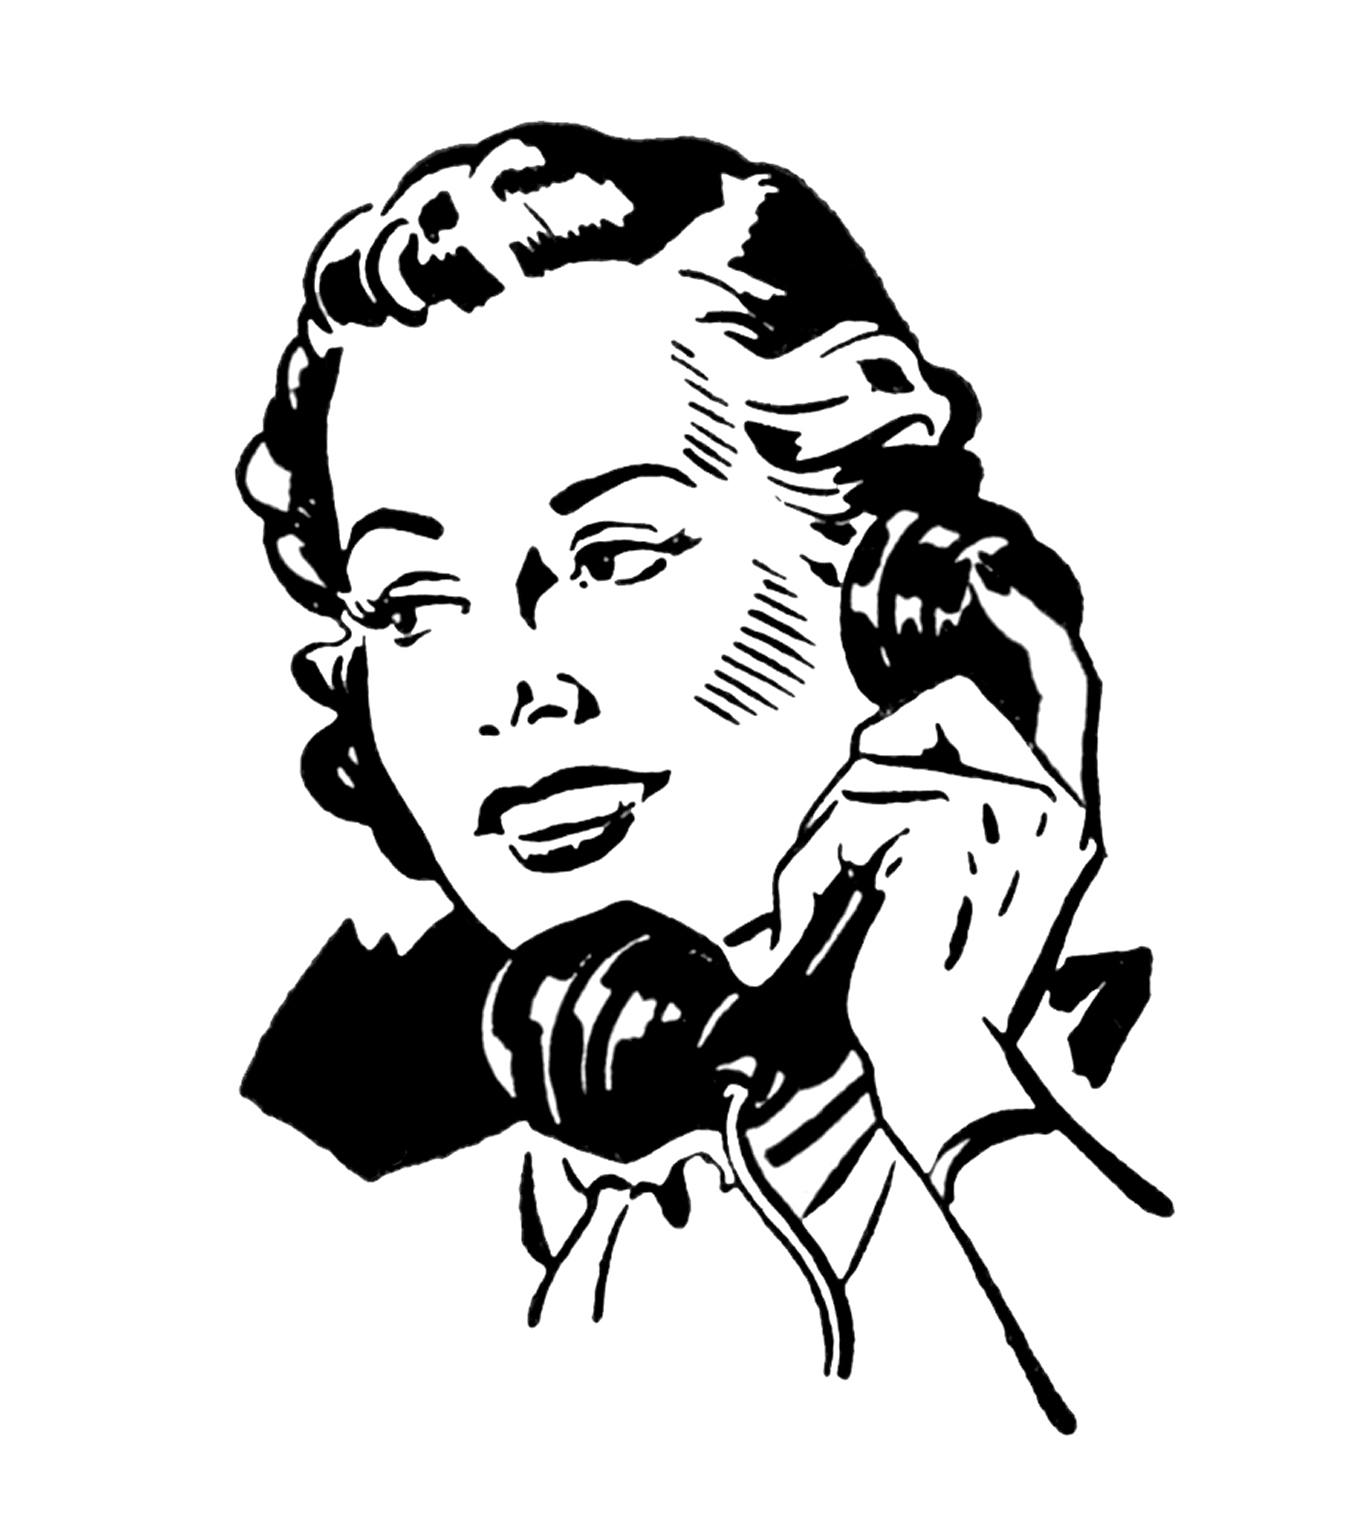 7 Vintage Telephone Images! - The Graphics Fairy Old Lady On Cell Phone Clip Art